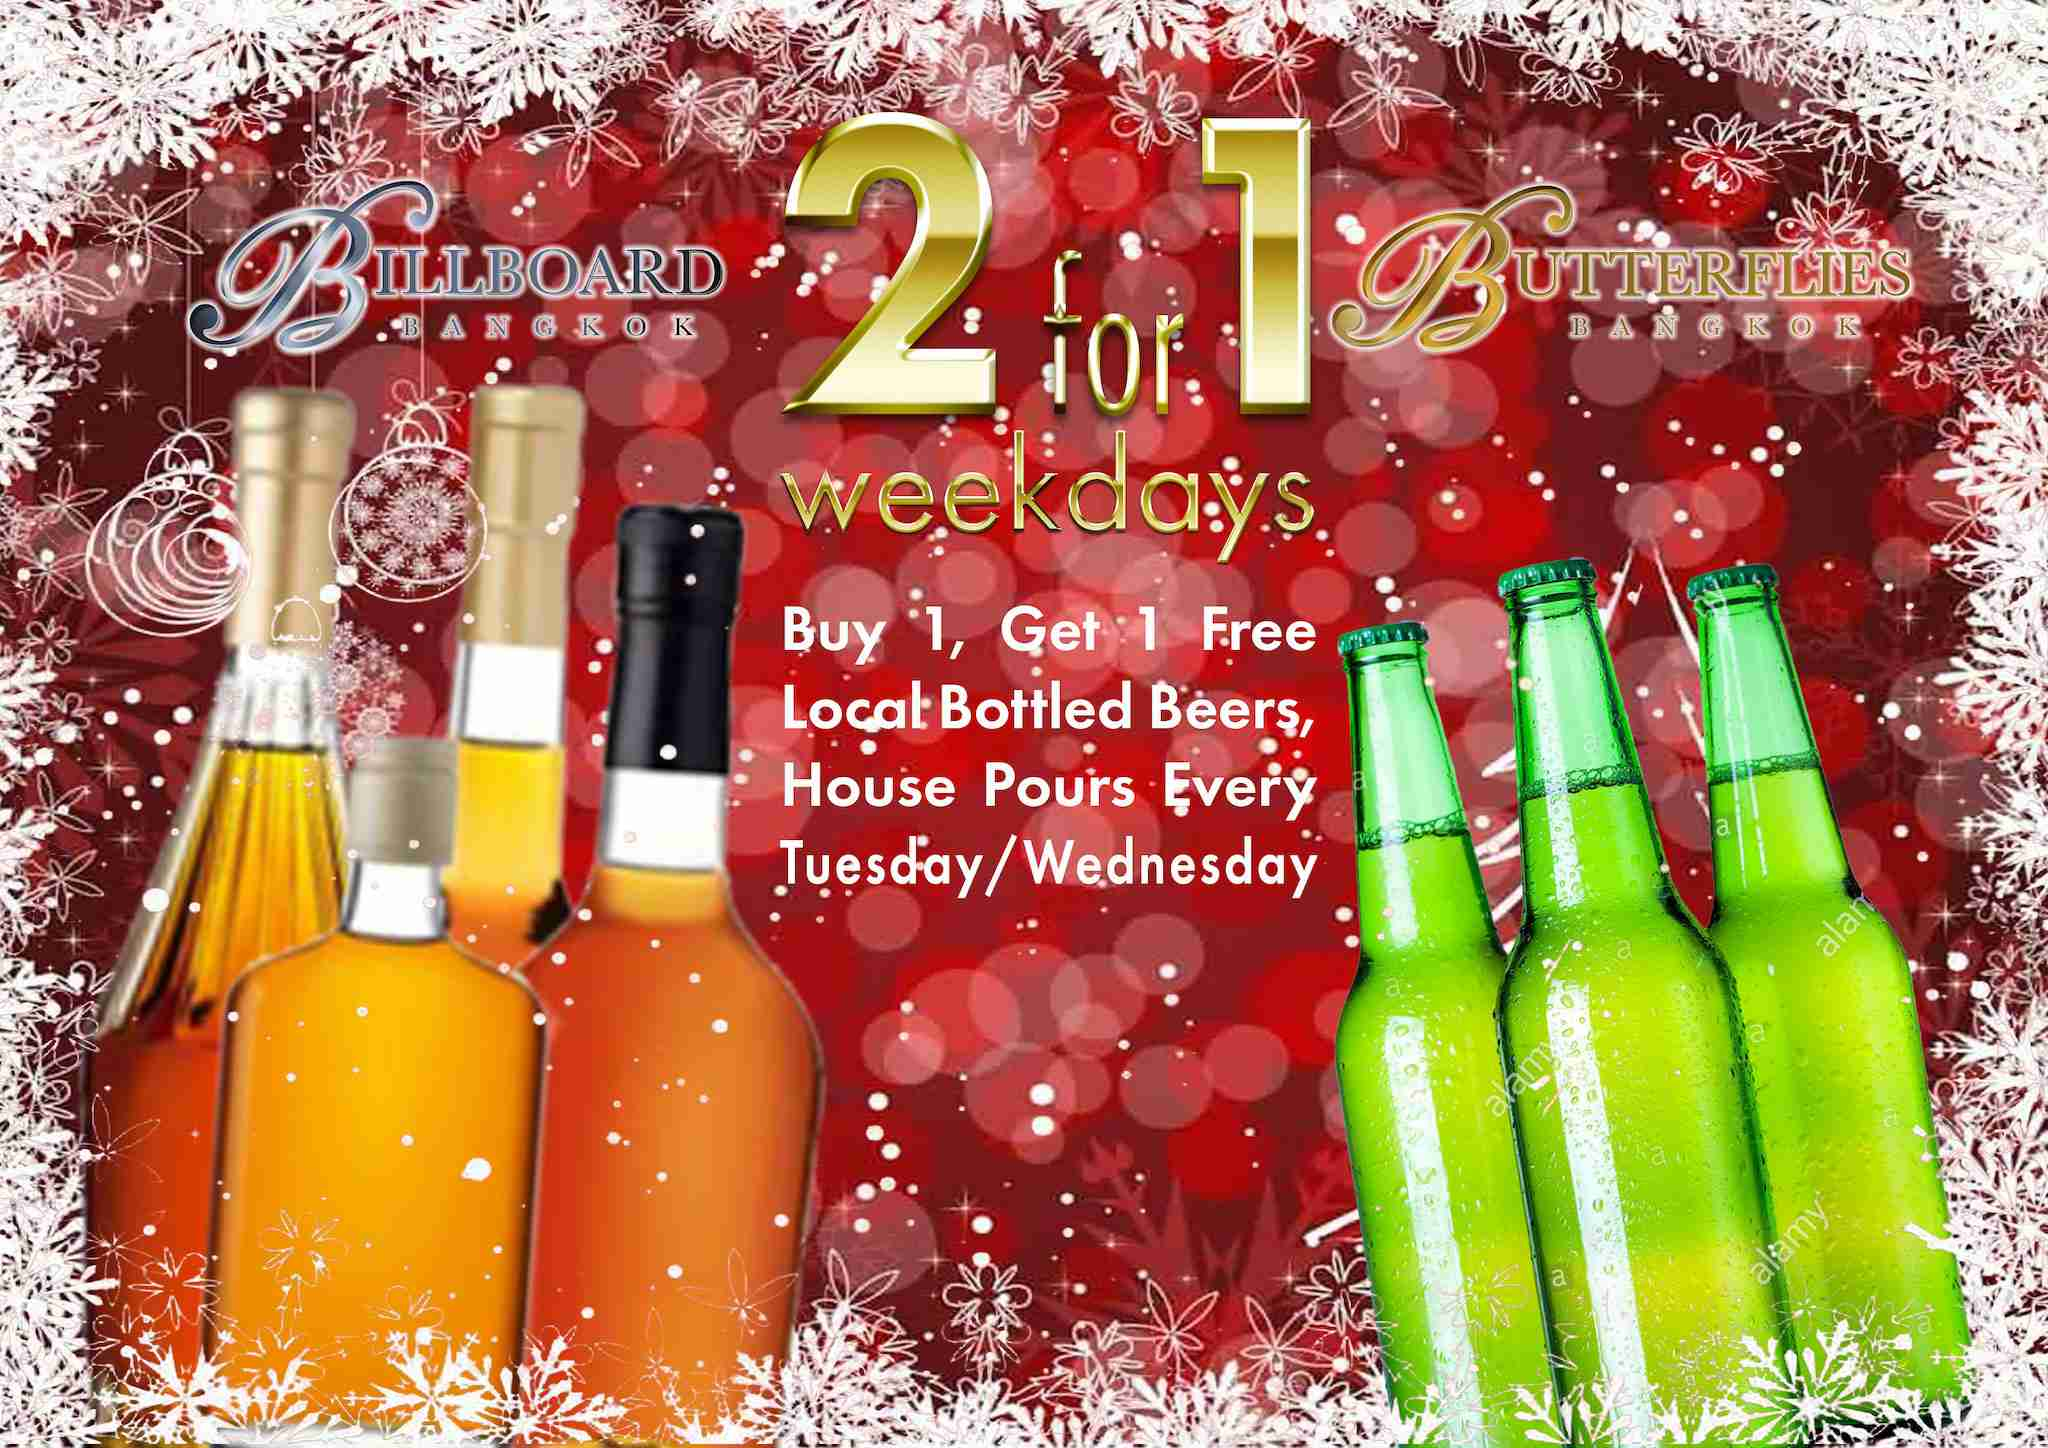 2-For-1 Midweek Drinks at Billboard, Butterflies in December